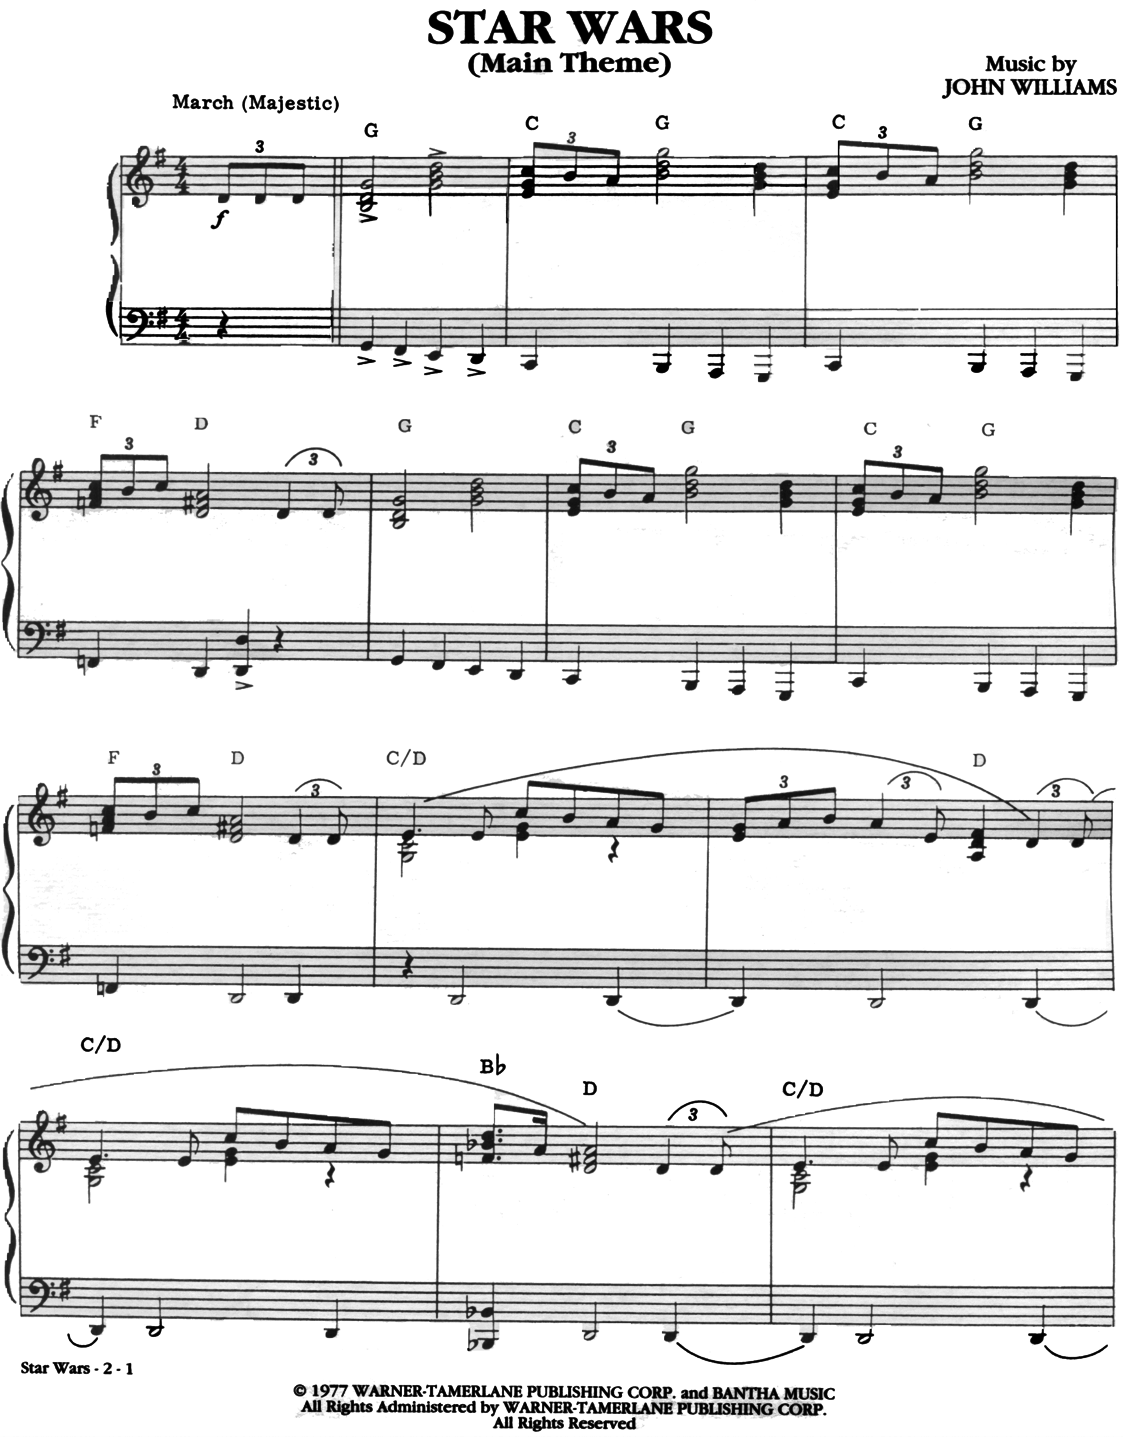 Time Signature Of Star Wars Theme 10